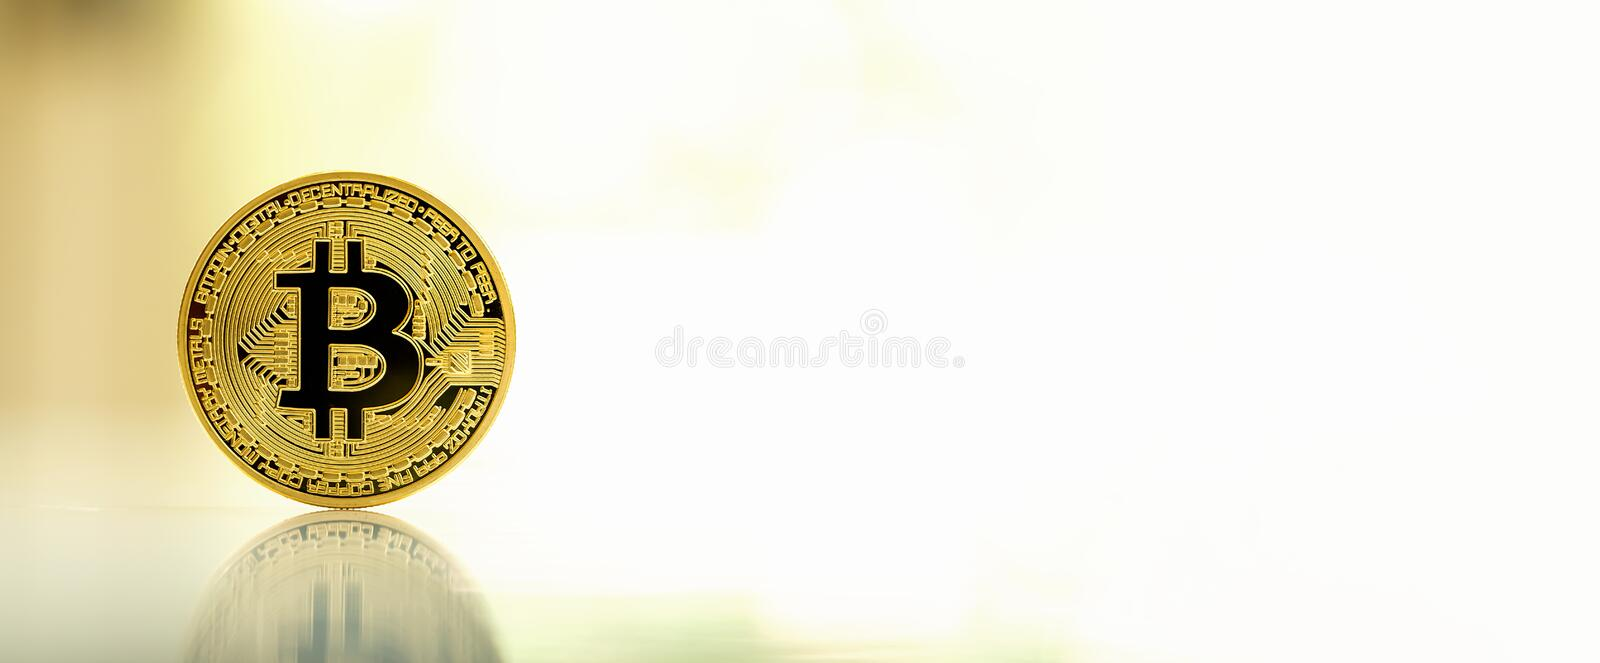 Gold bitcoin cryptocurrency royalty free stock photos